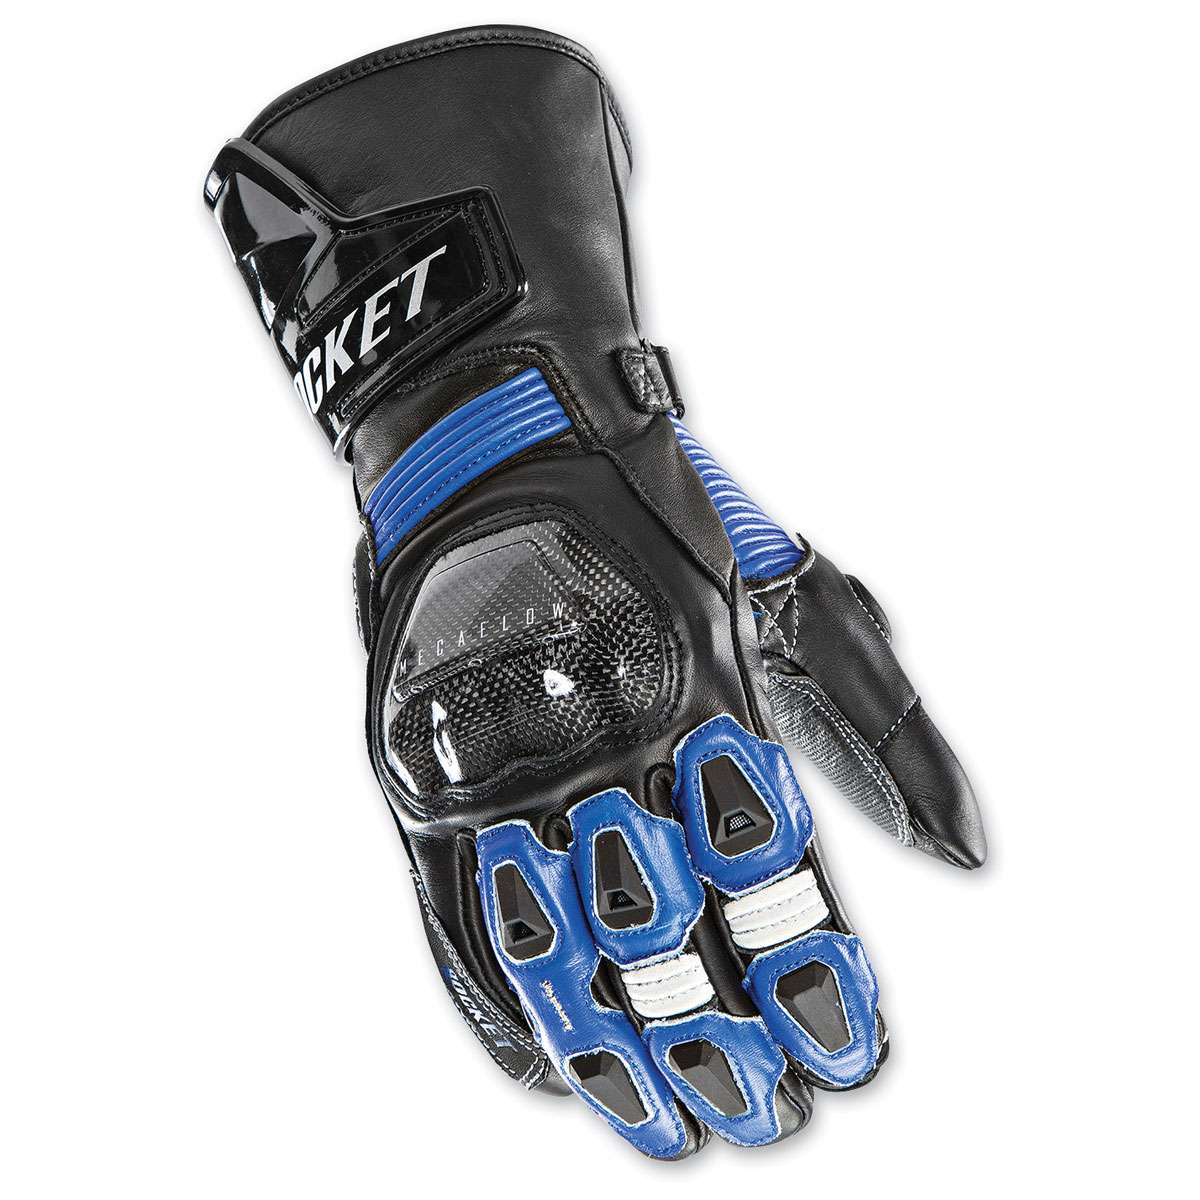 Joe Rocket Men's GPX Black/Blue Gloves